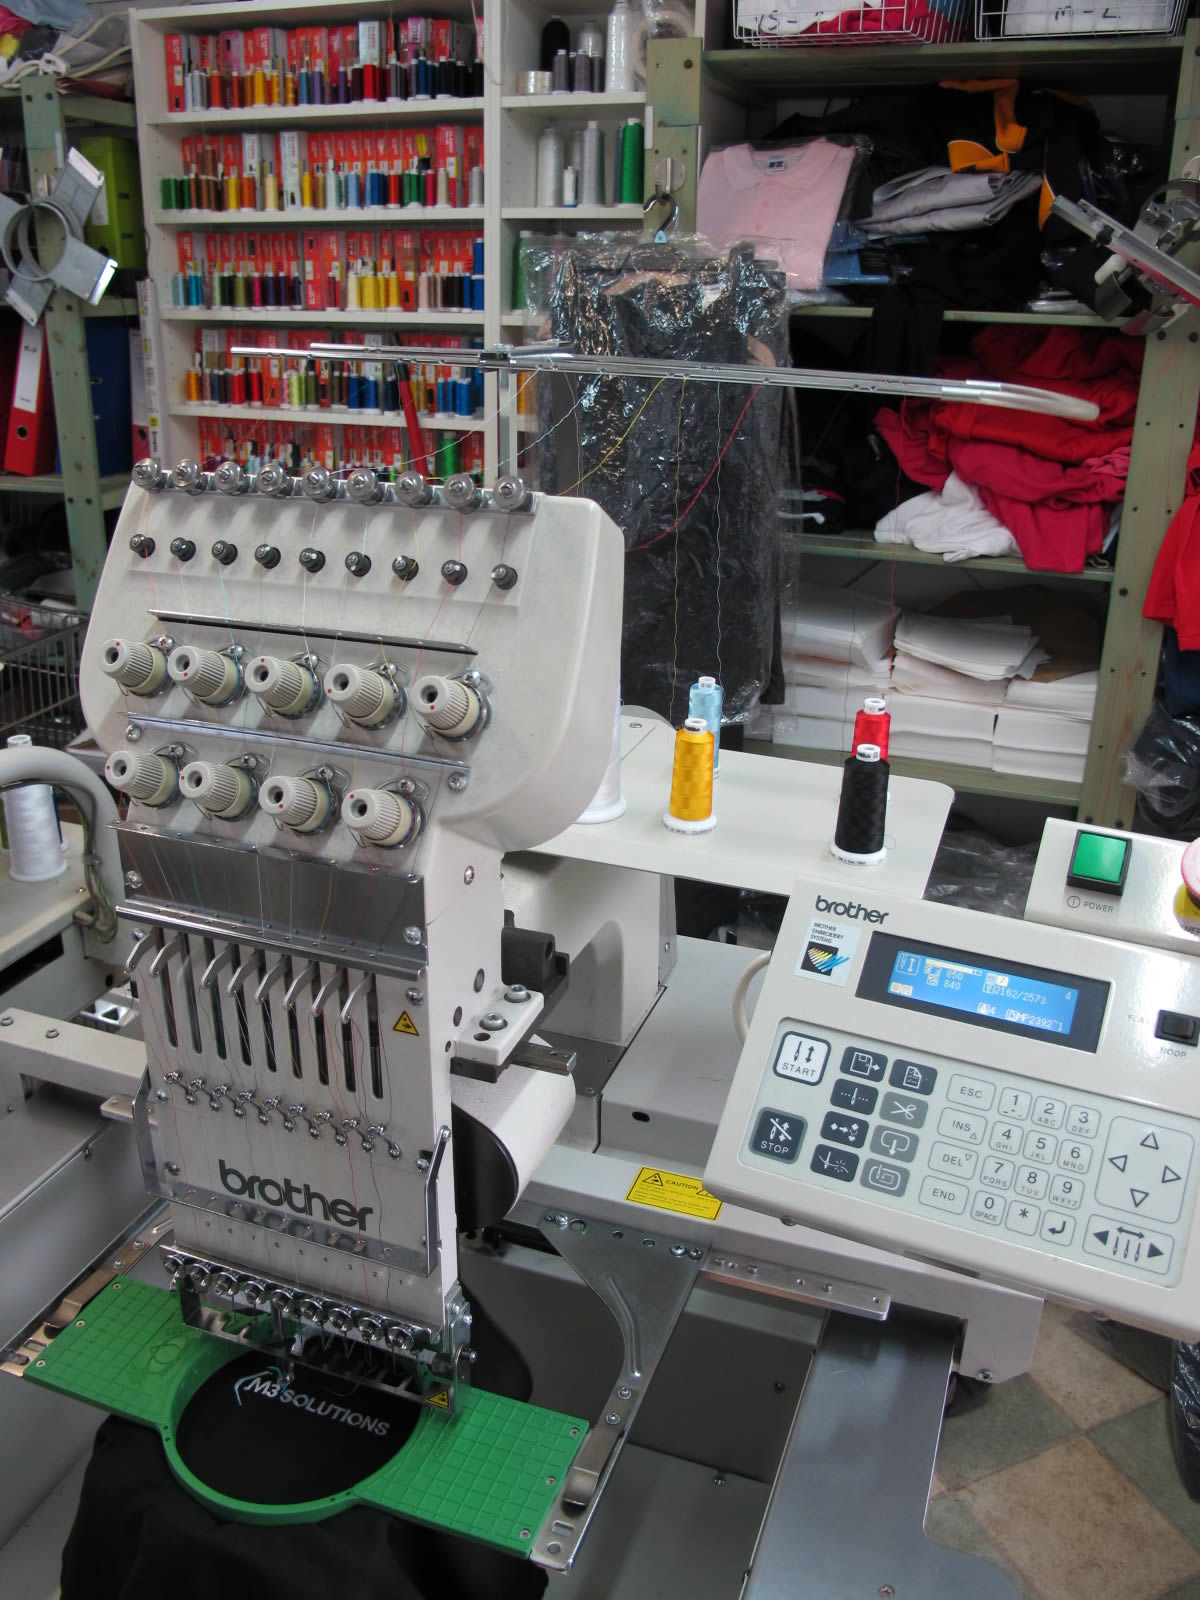 Professional embroidery machine and colour thread spools